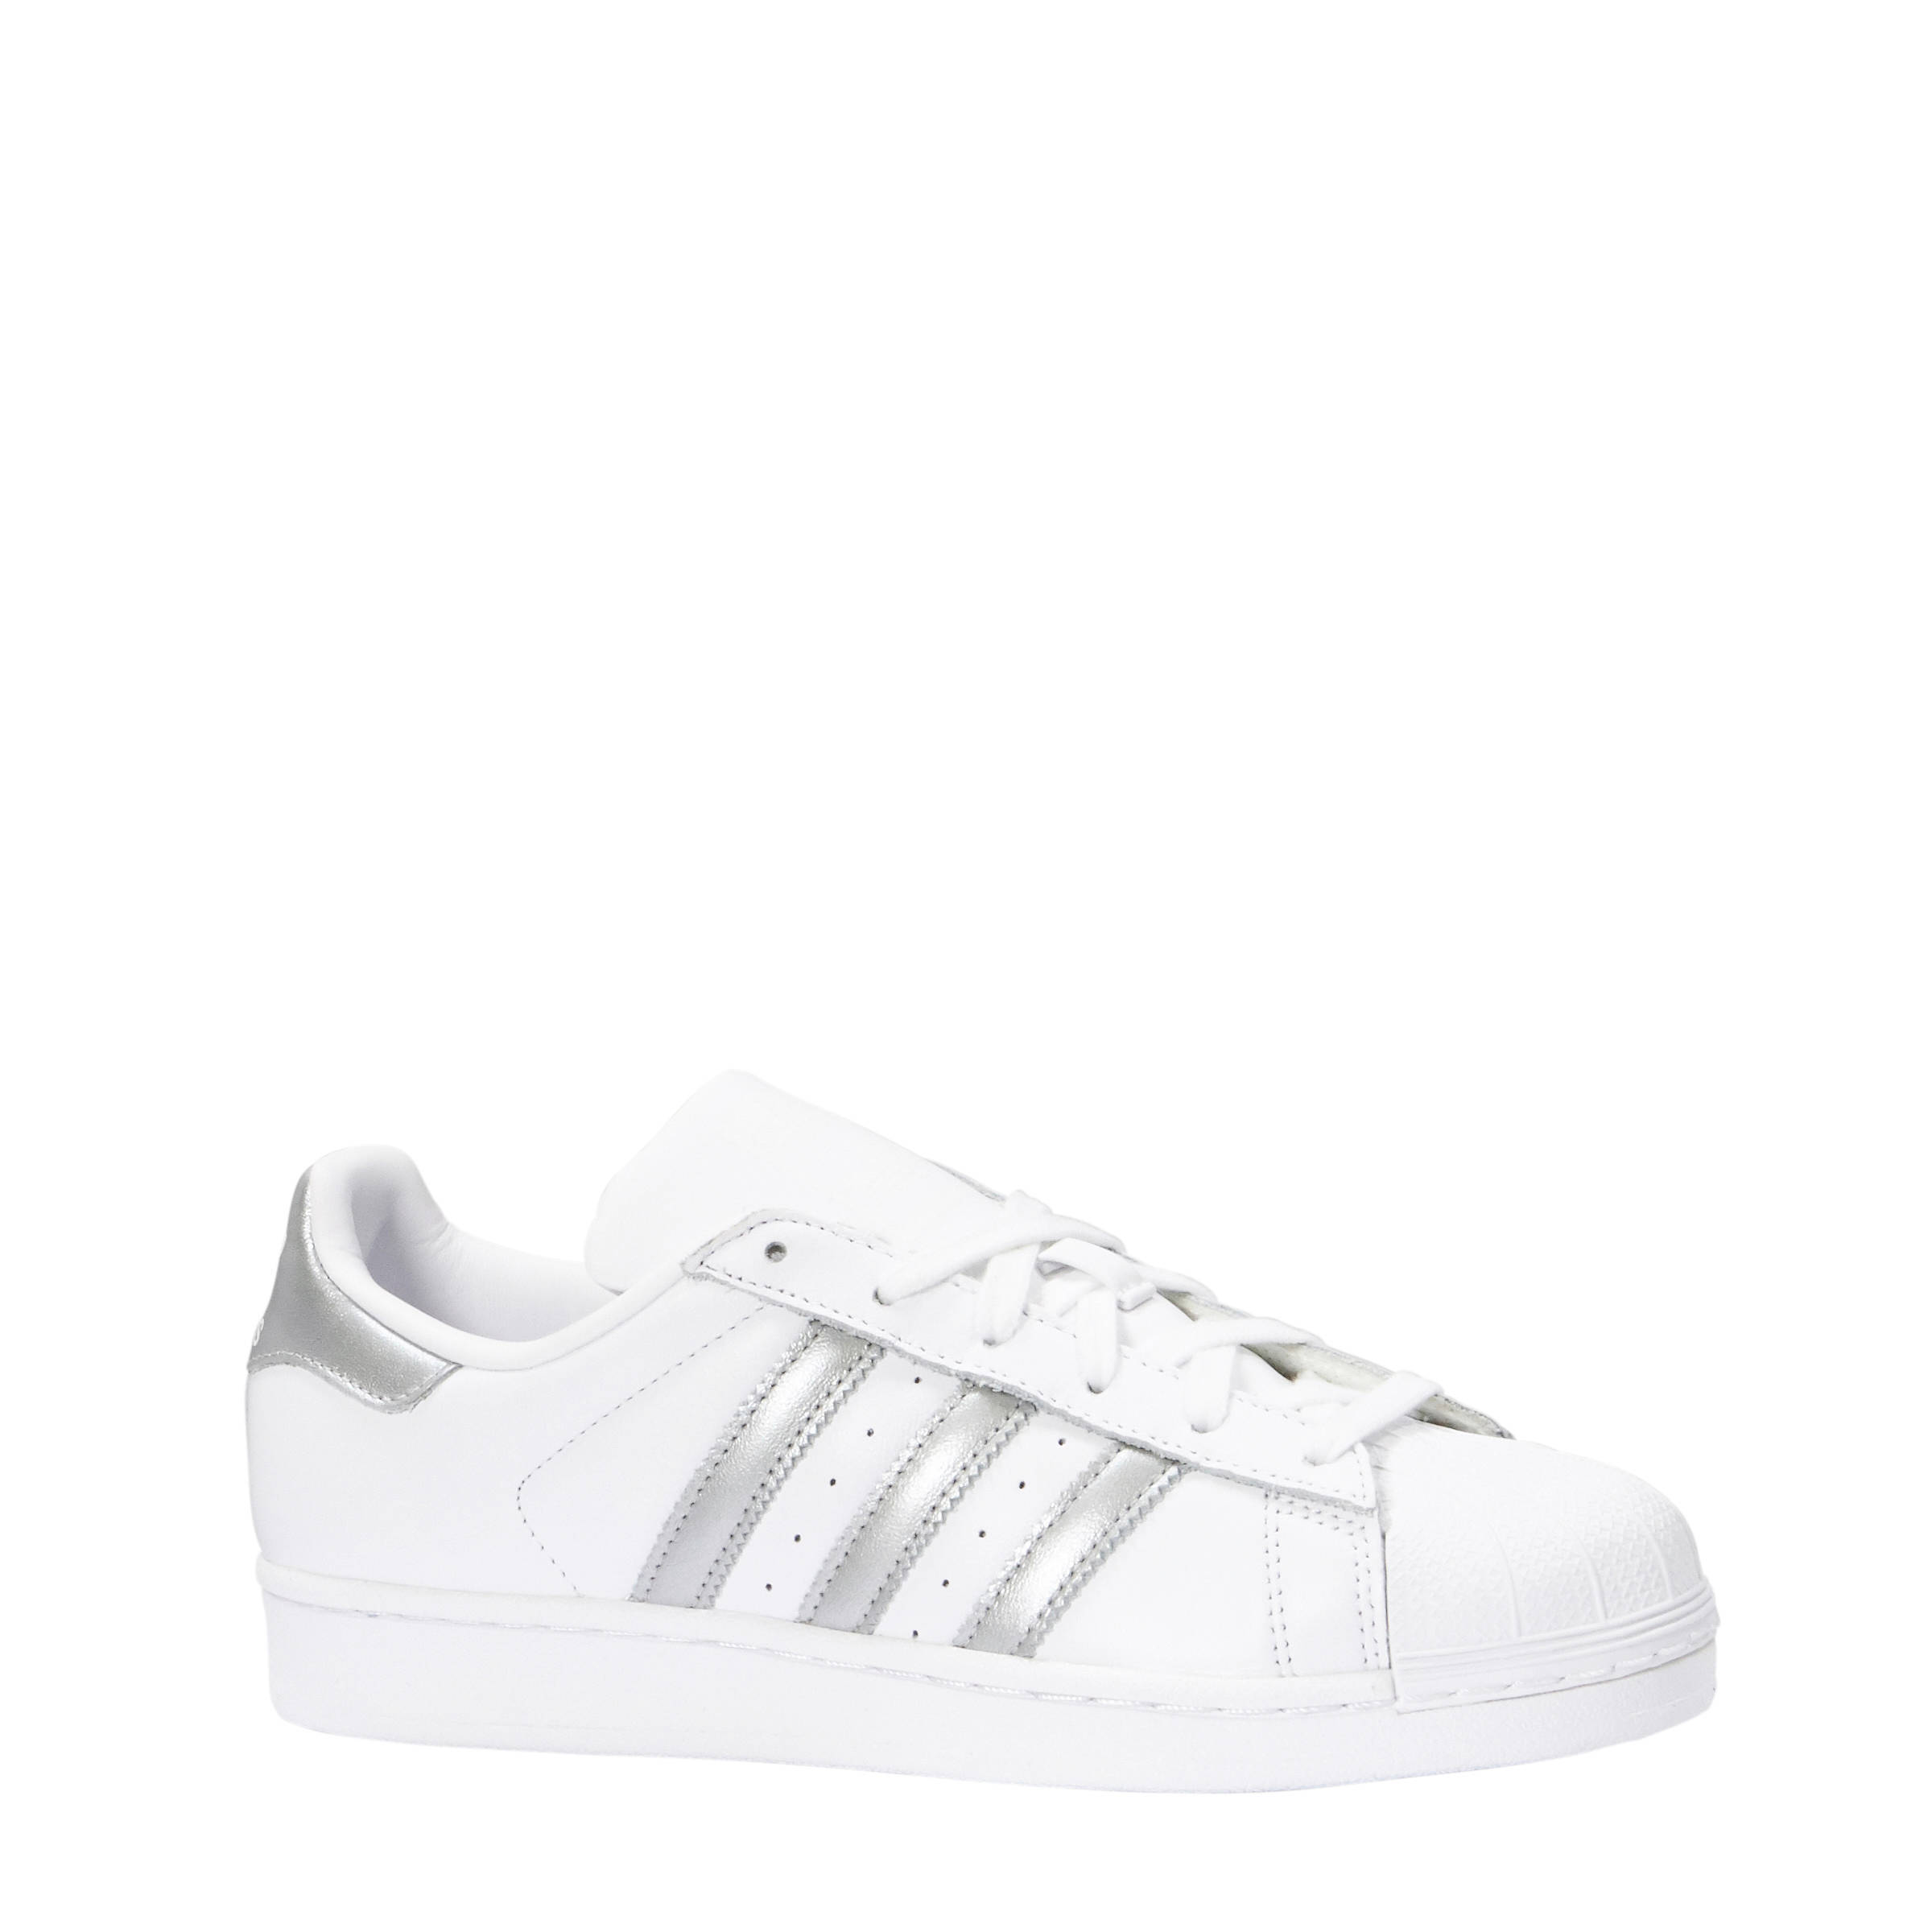 online retailer 20705 4c8a2 adidas originals Superstar W sneakers wit zilver   wehkamp